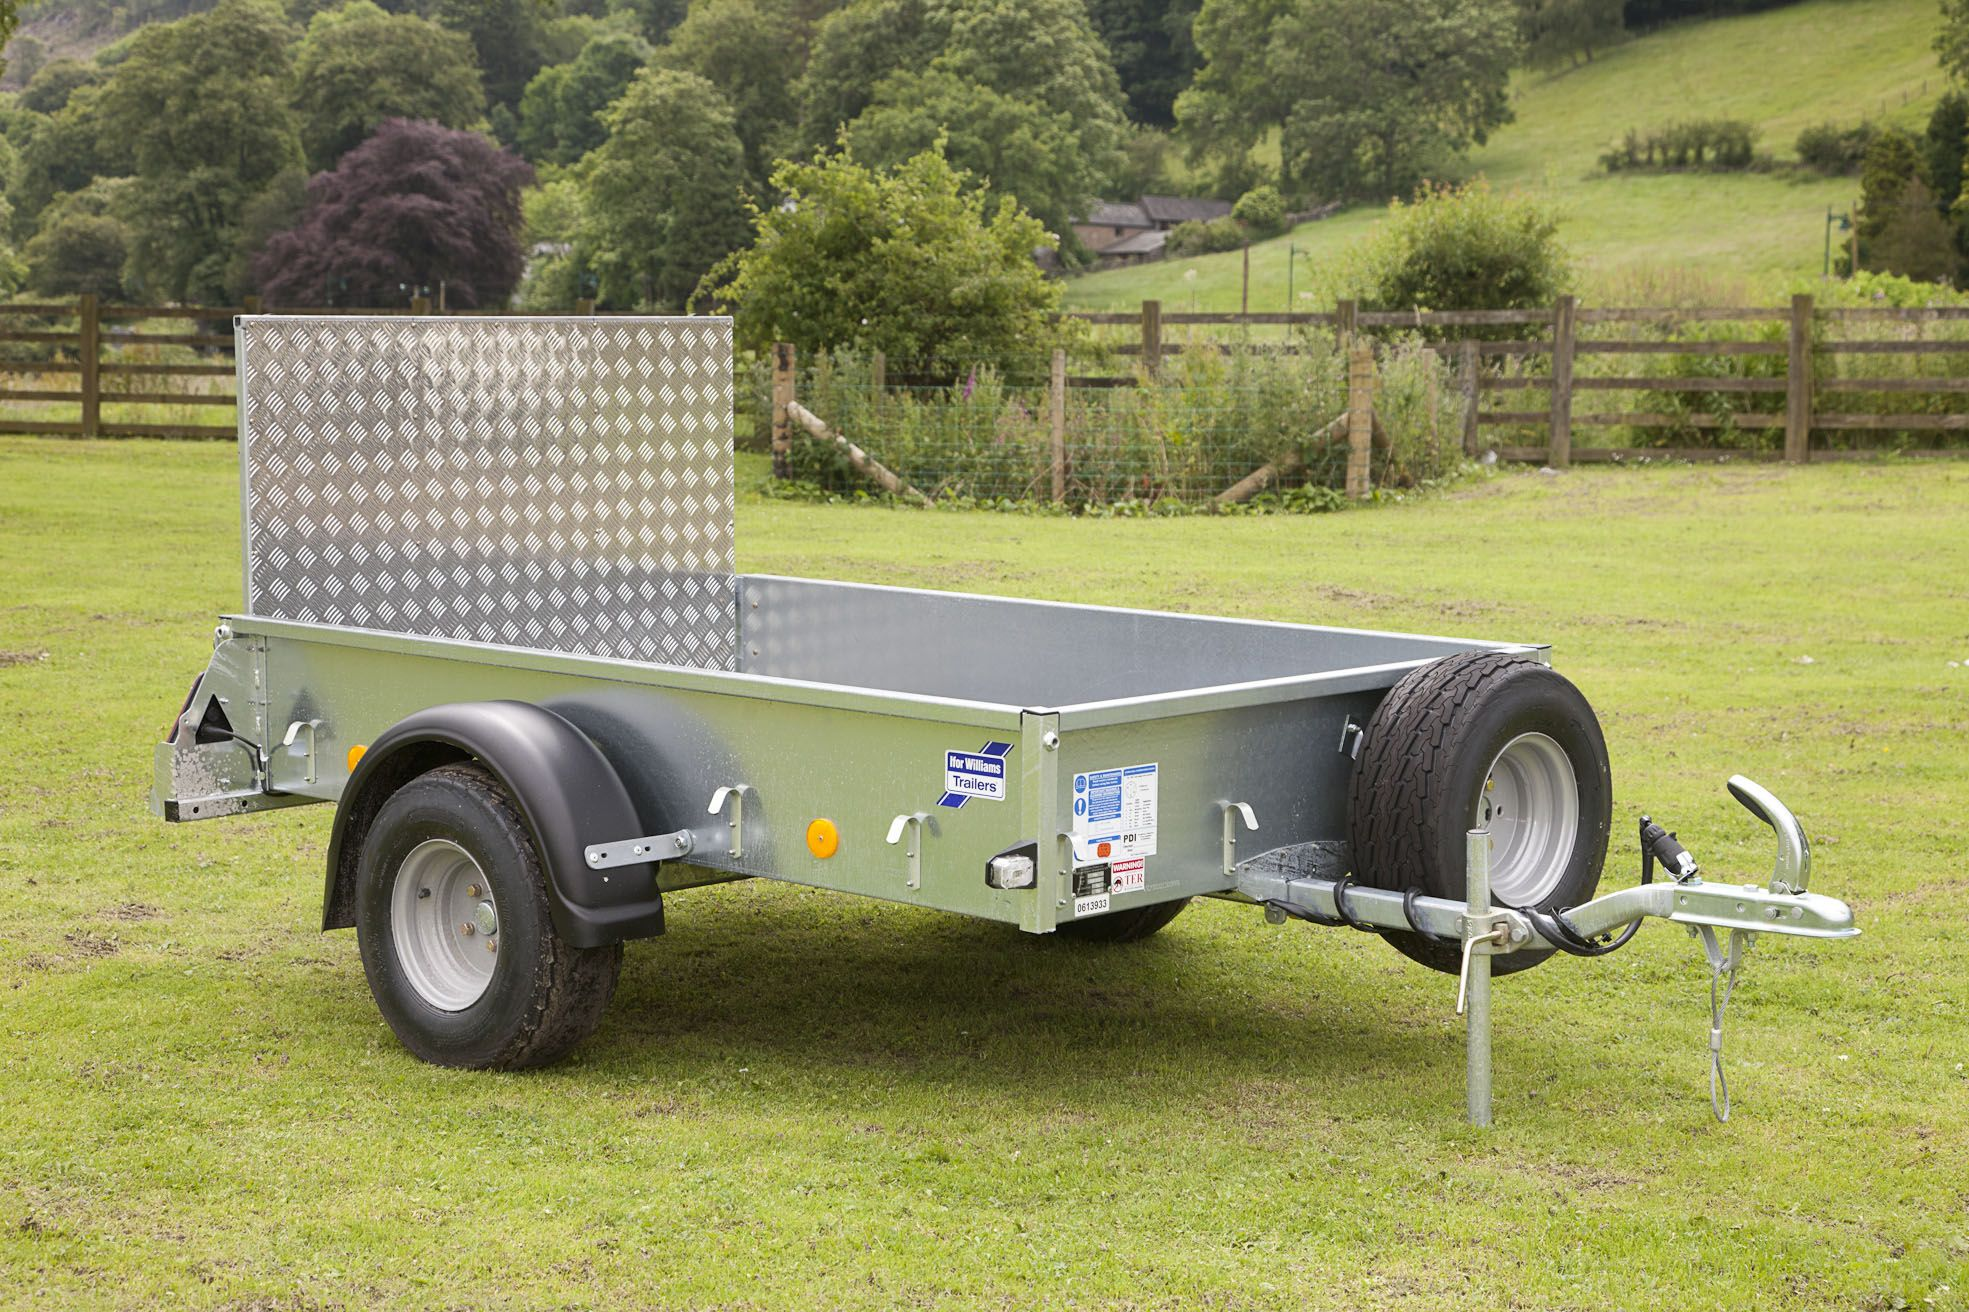 Hanna-barbera Ifor Williams P6e Trailer Cheapest Price From Our Site